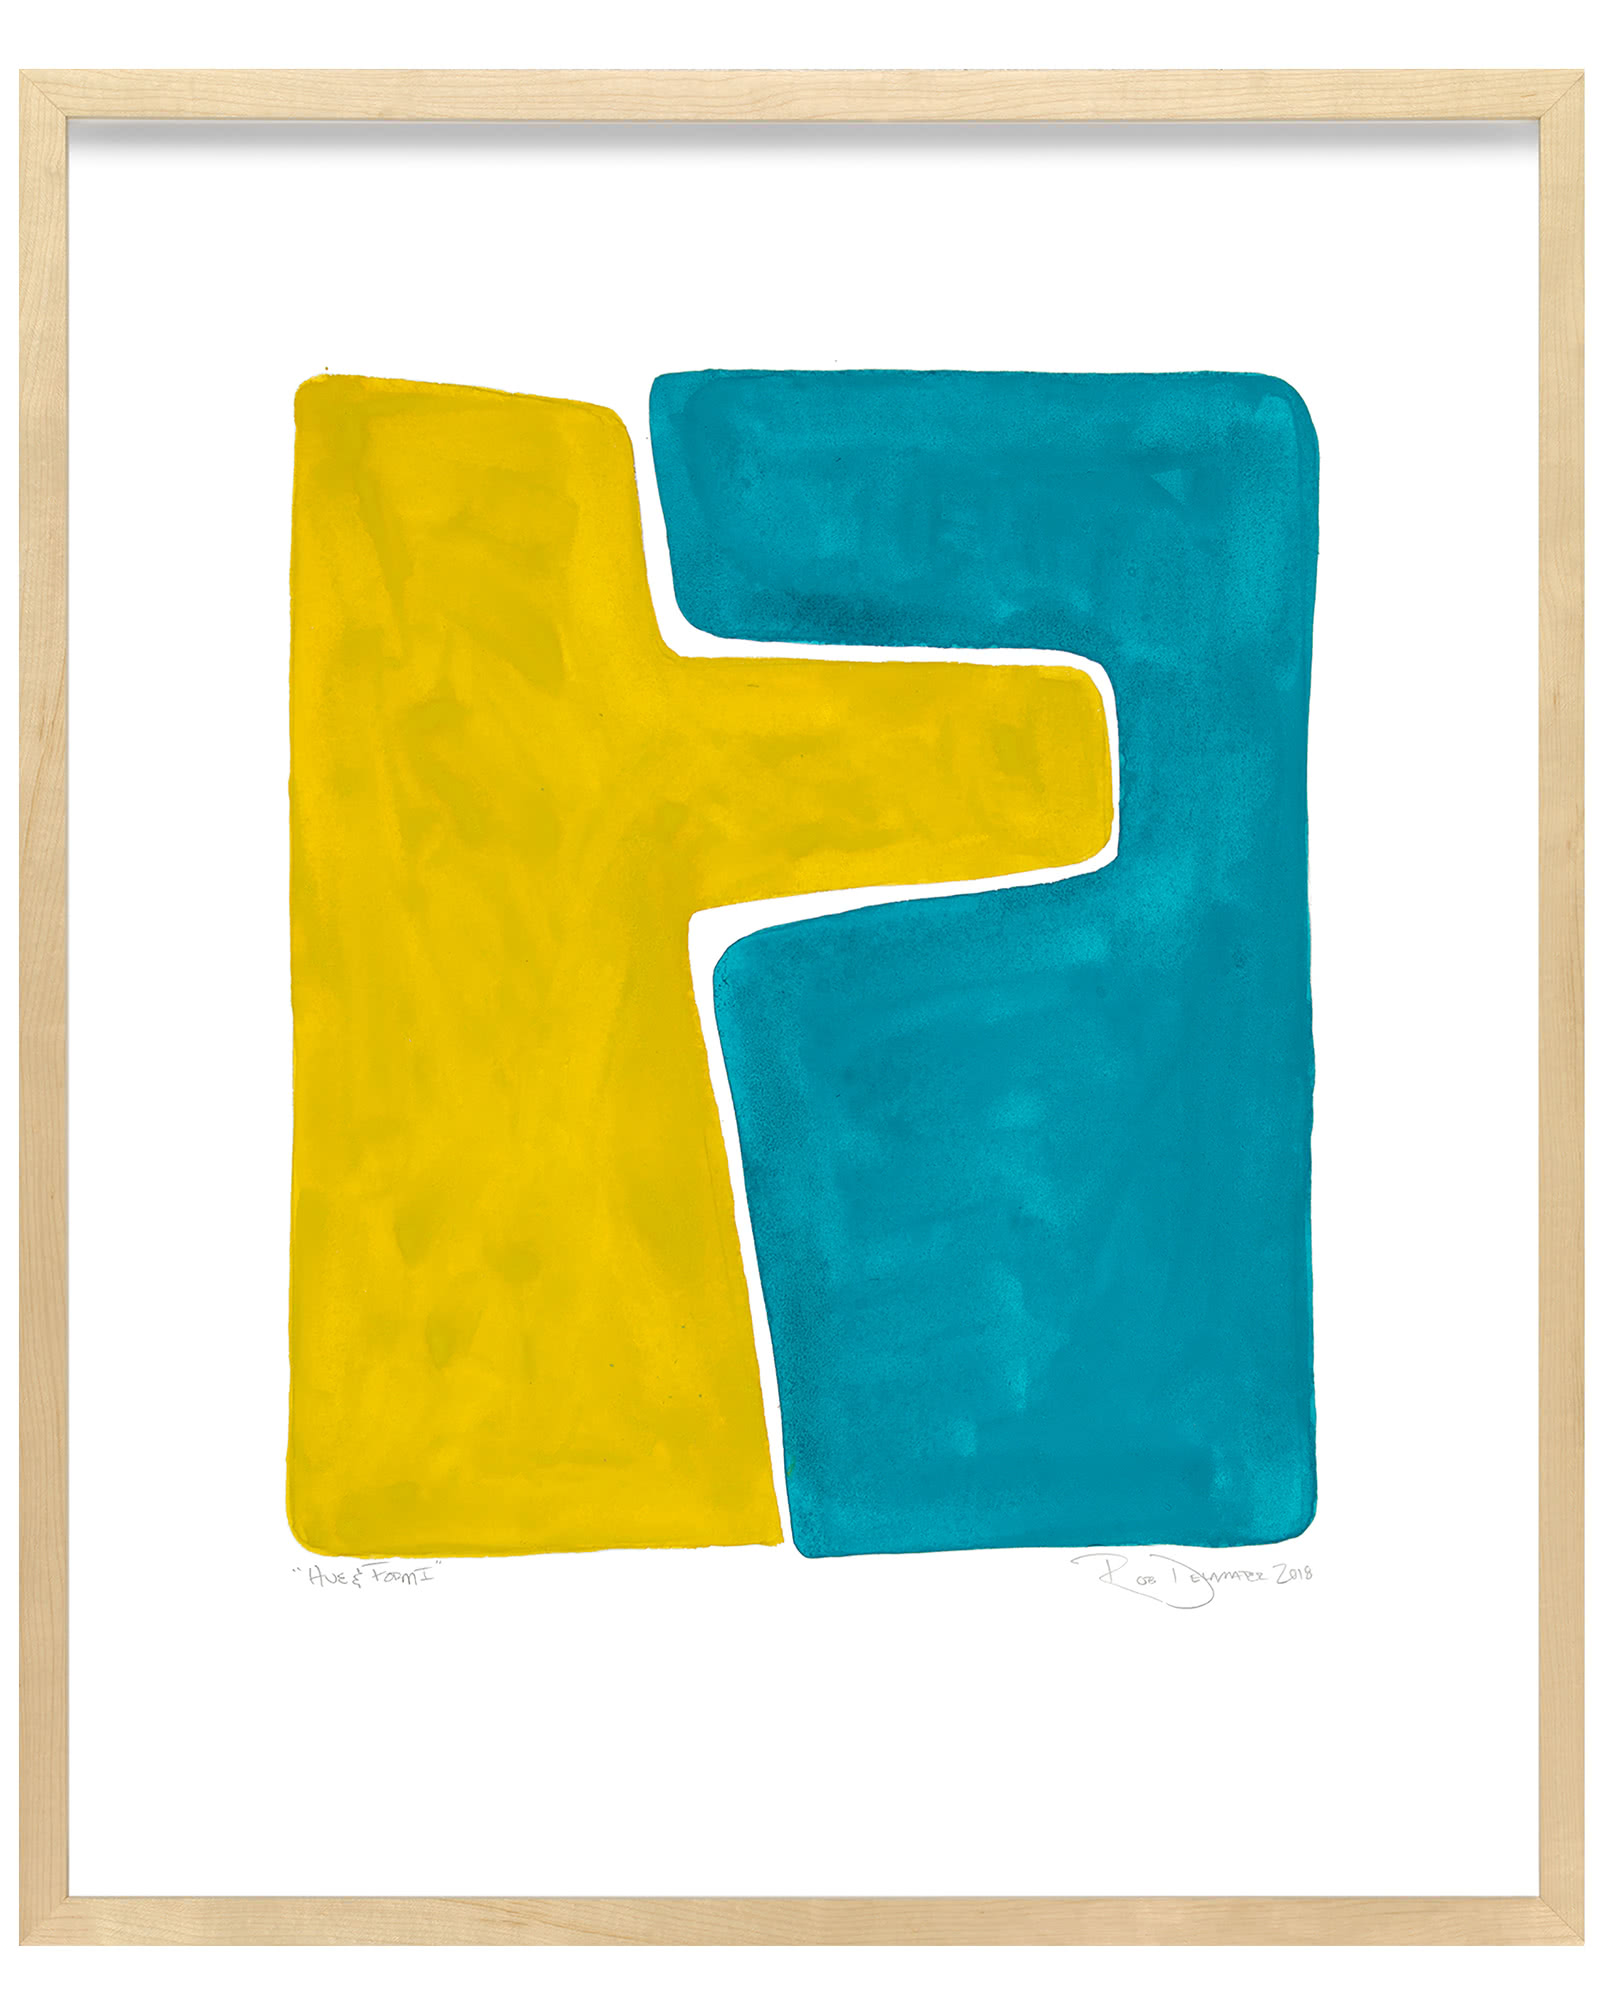 """Hue & Form I"" by Rob Delamater,"